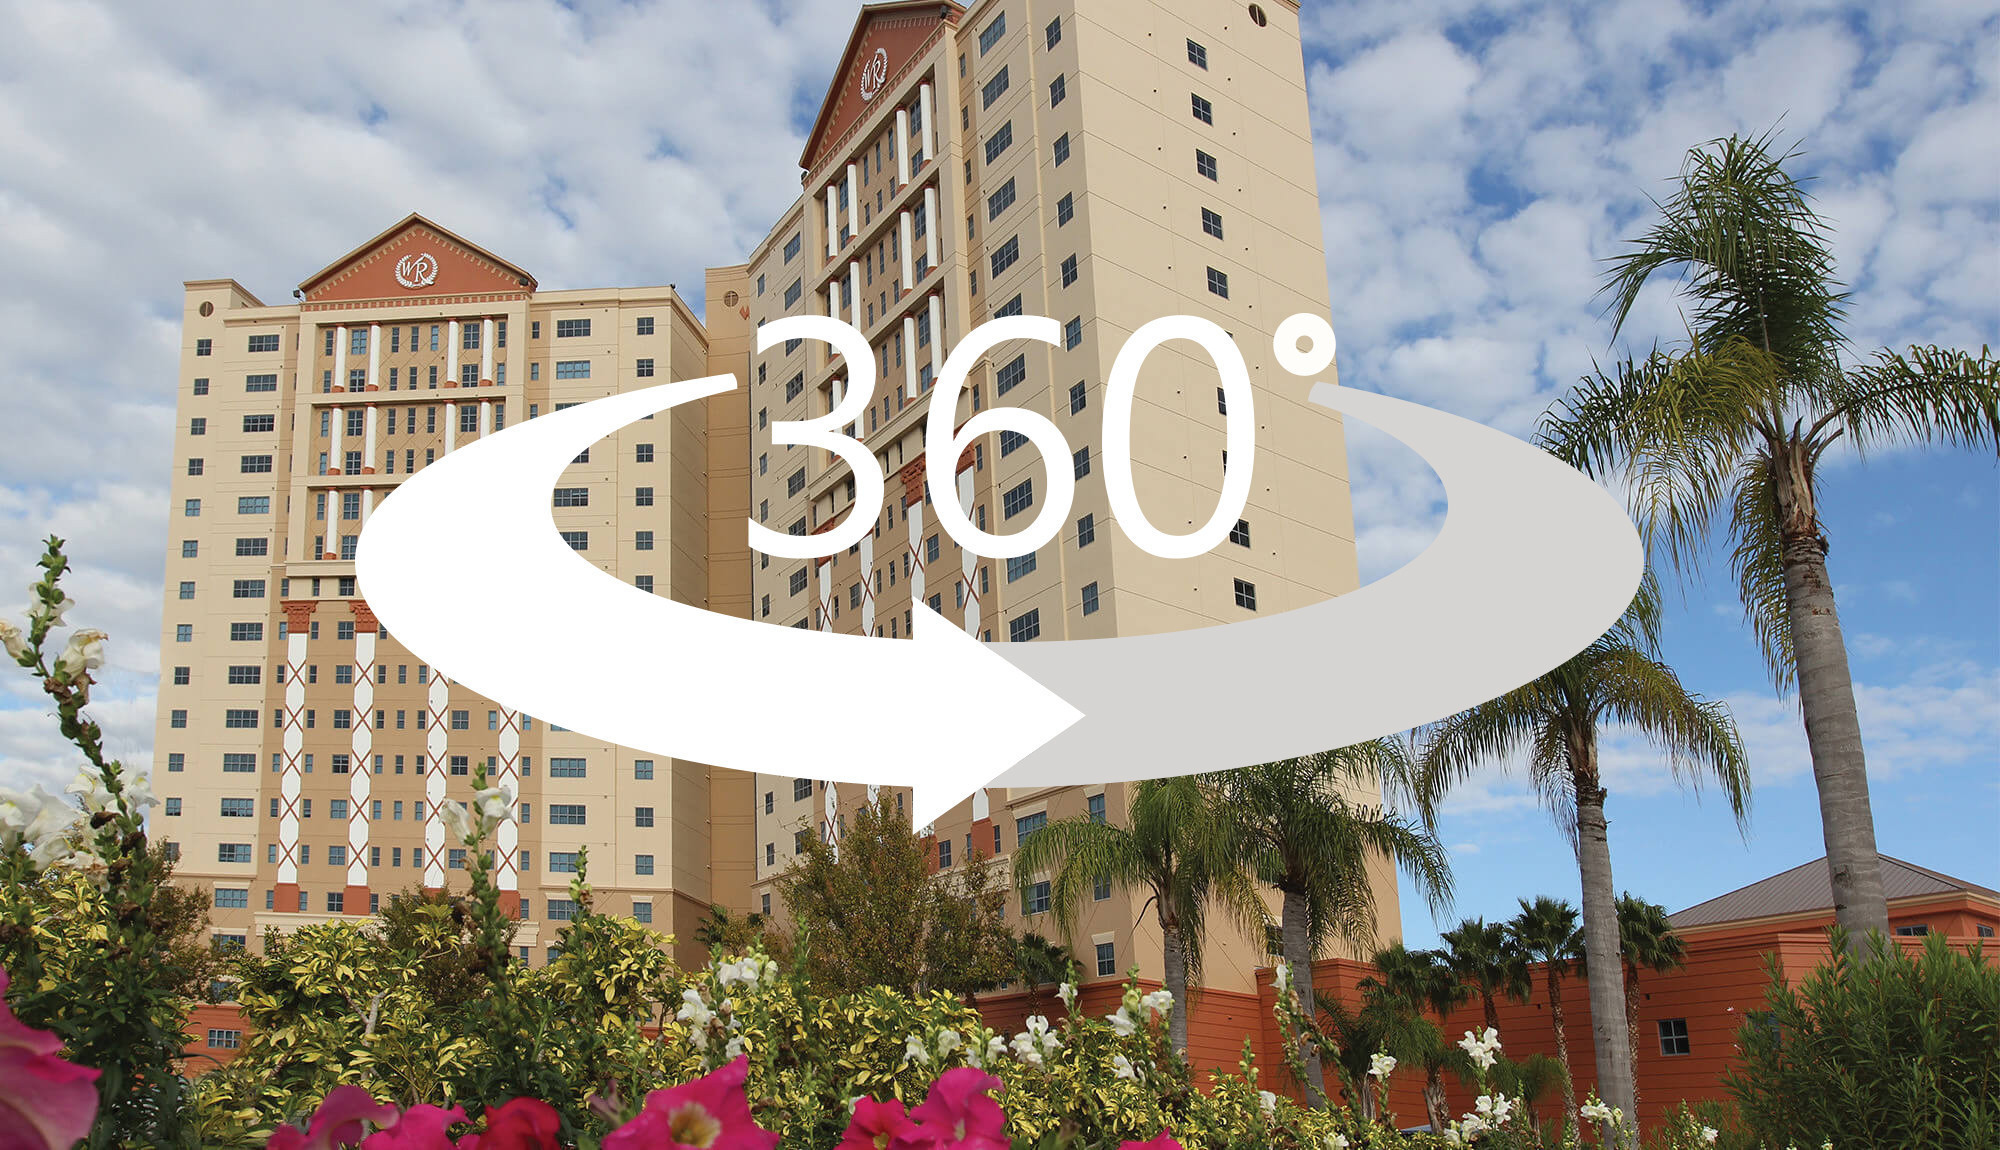 360-degree virtual tour through different room types for Orlando resorts on International Drive | Westgate Palace Resort in Orlando, FL